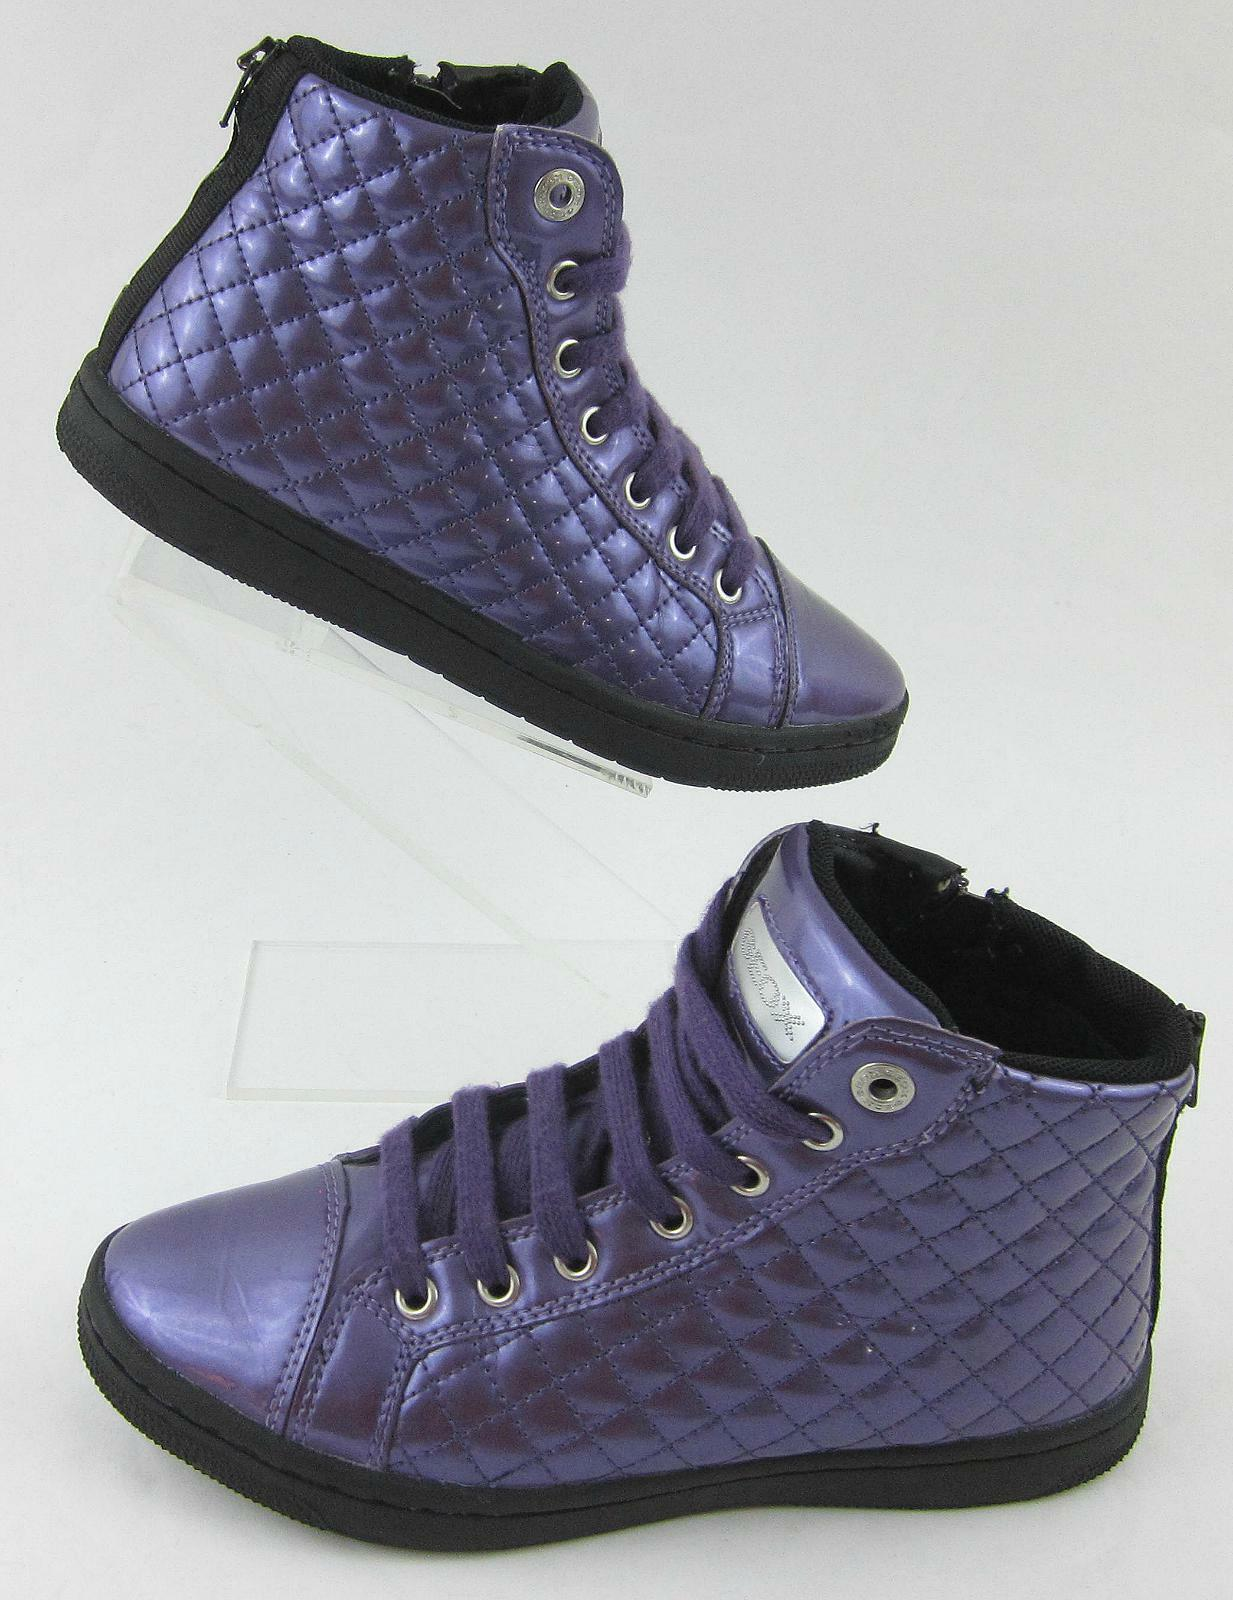 Geox Respira Hi Top Sneakers Purple Patent Leather Sz 36 EU    6 US   4 Juniors